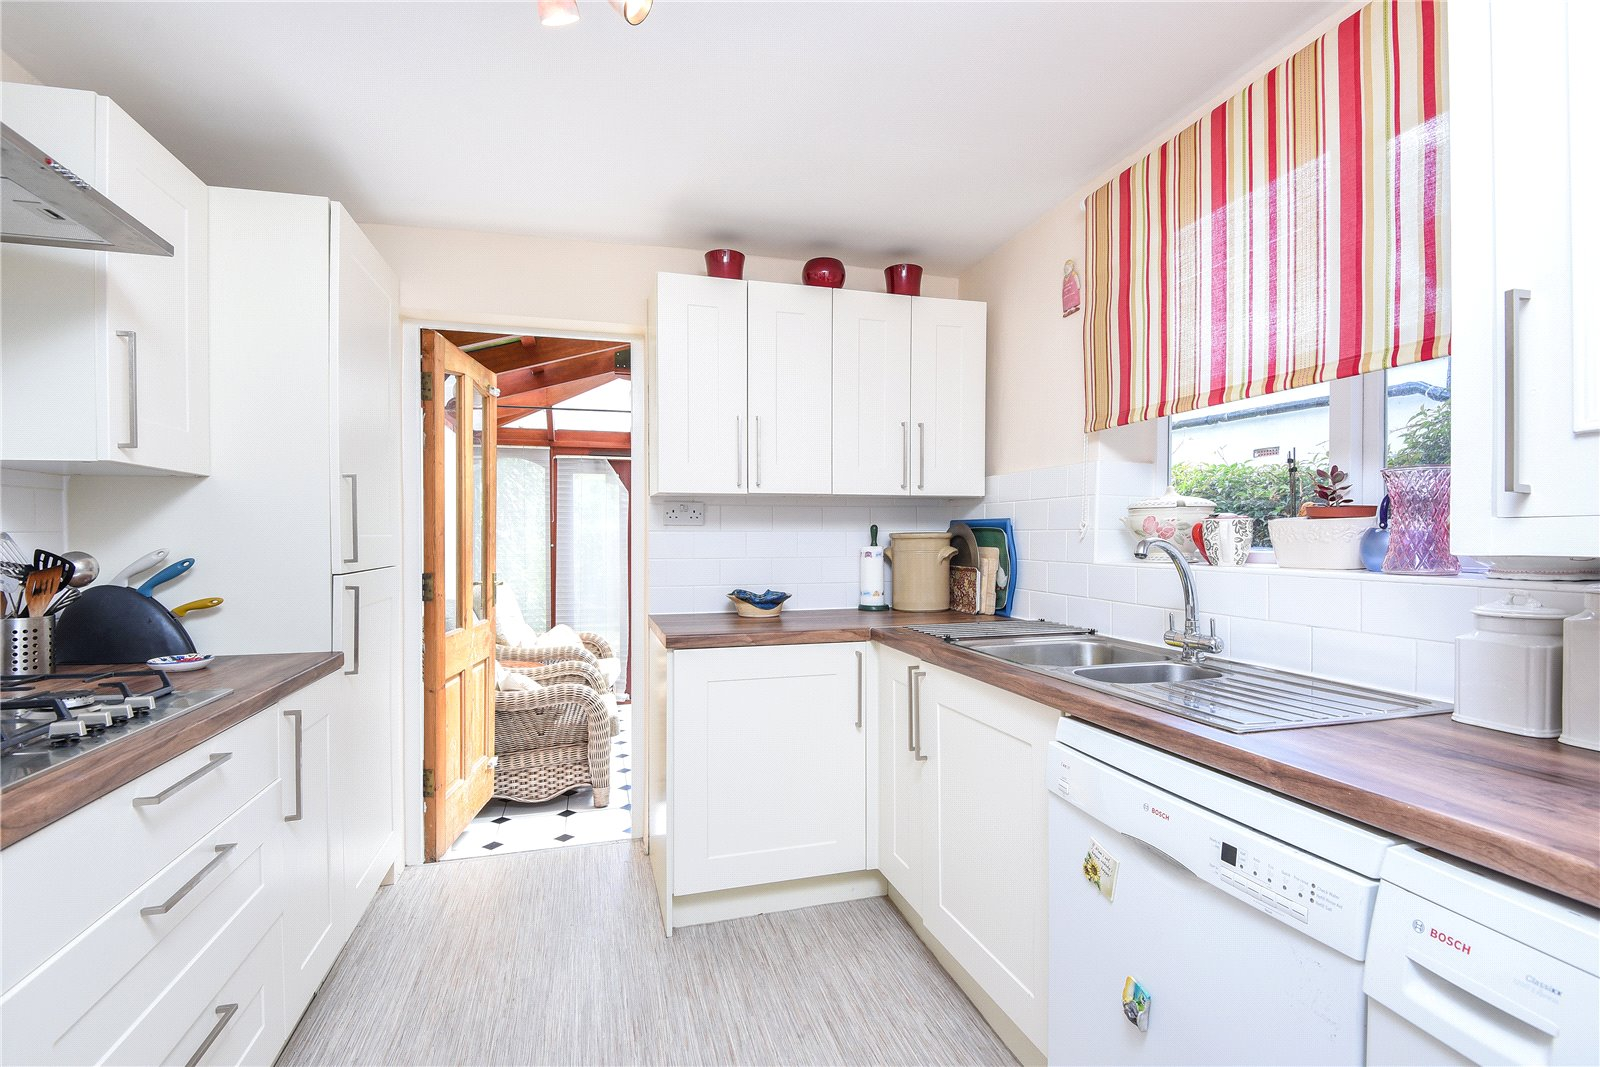 2 Bedrooms Terraced House for sale in Stanley Road Bounds Green London N11